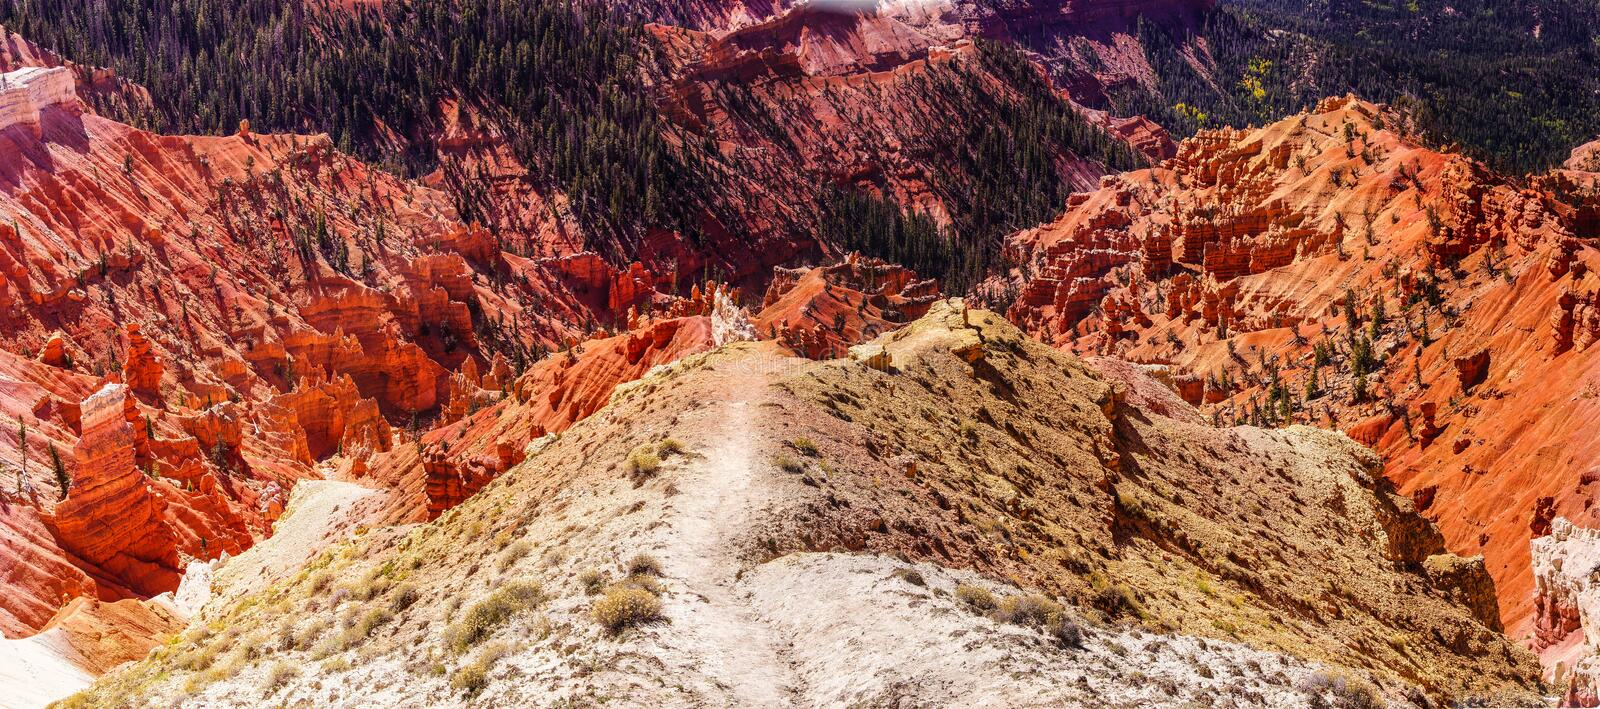 Panorama, fantasticly eroded red Navajo sandstone royalty free stock image